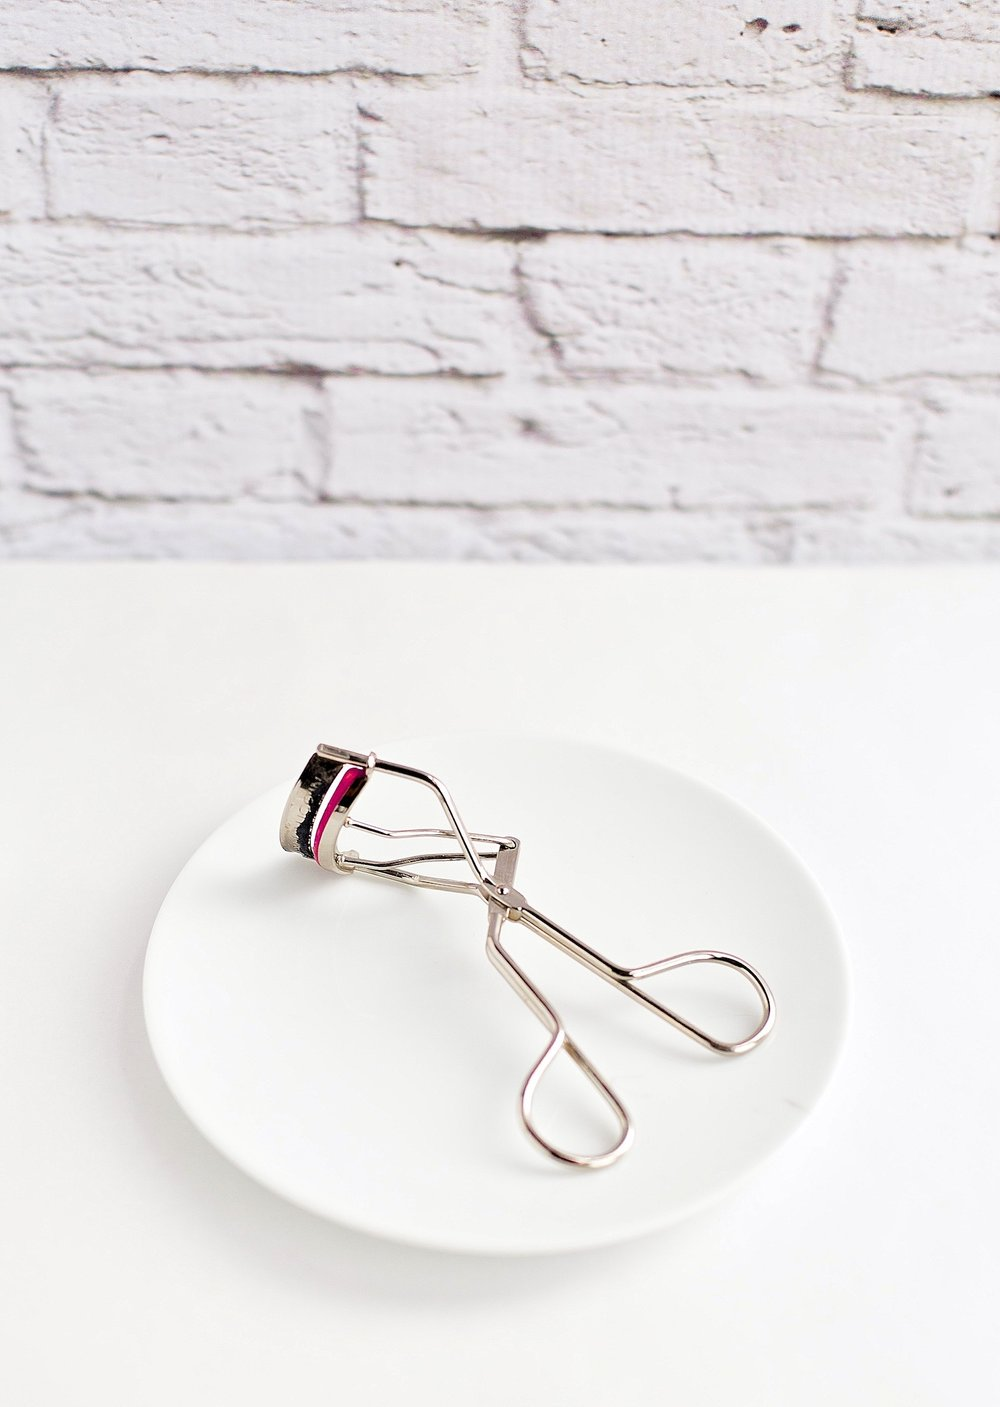 New Beauty Products I'm Loving - Kevyn Aucoin Eyelash Curler | TrufflesandTrends.com